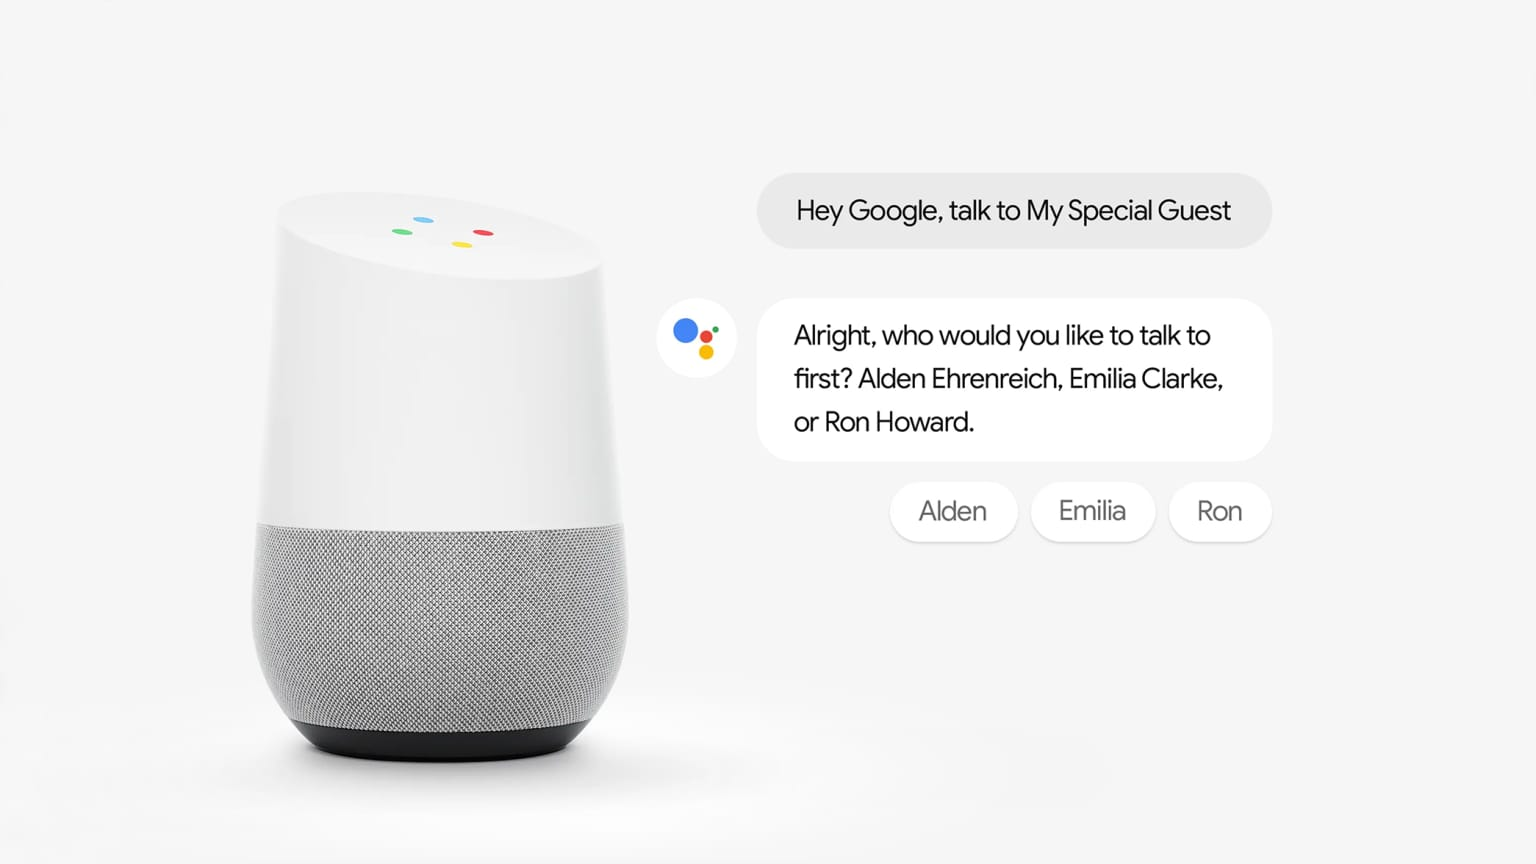 My Special Guest - Google Assistant